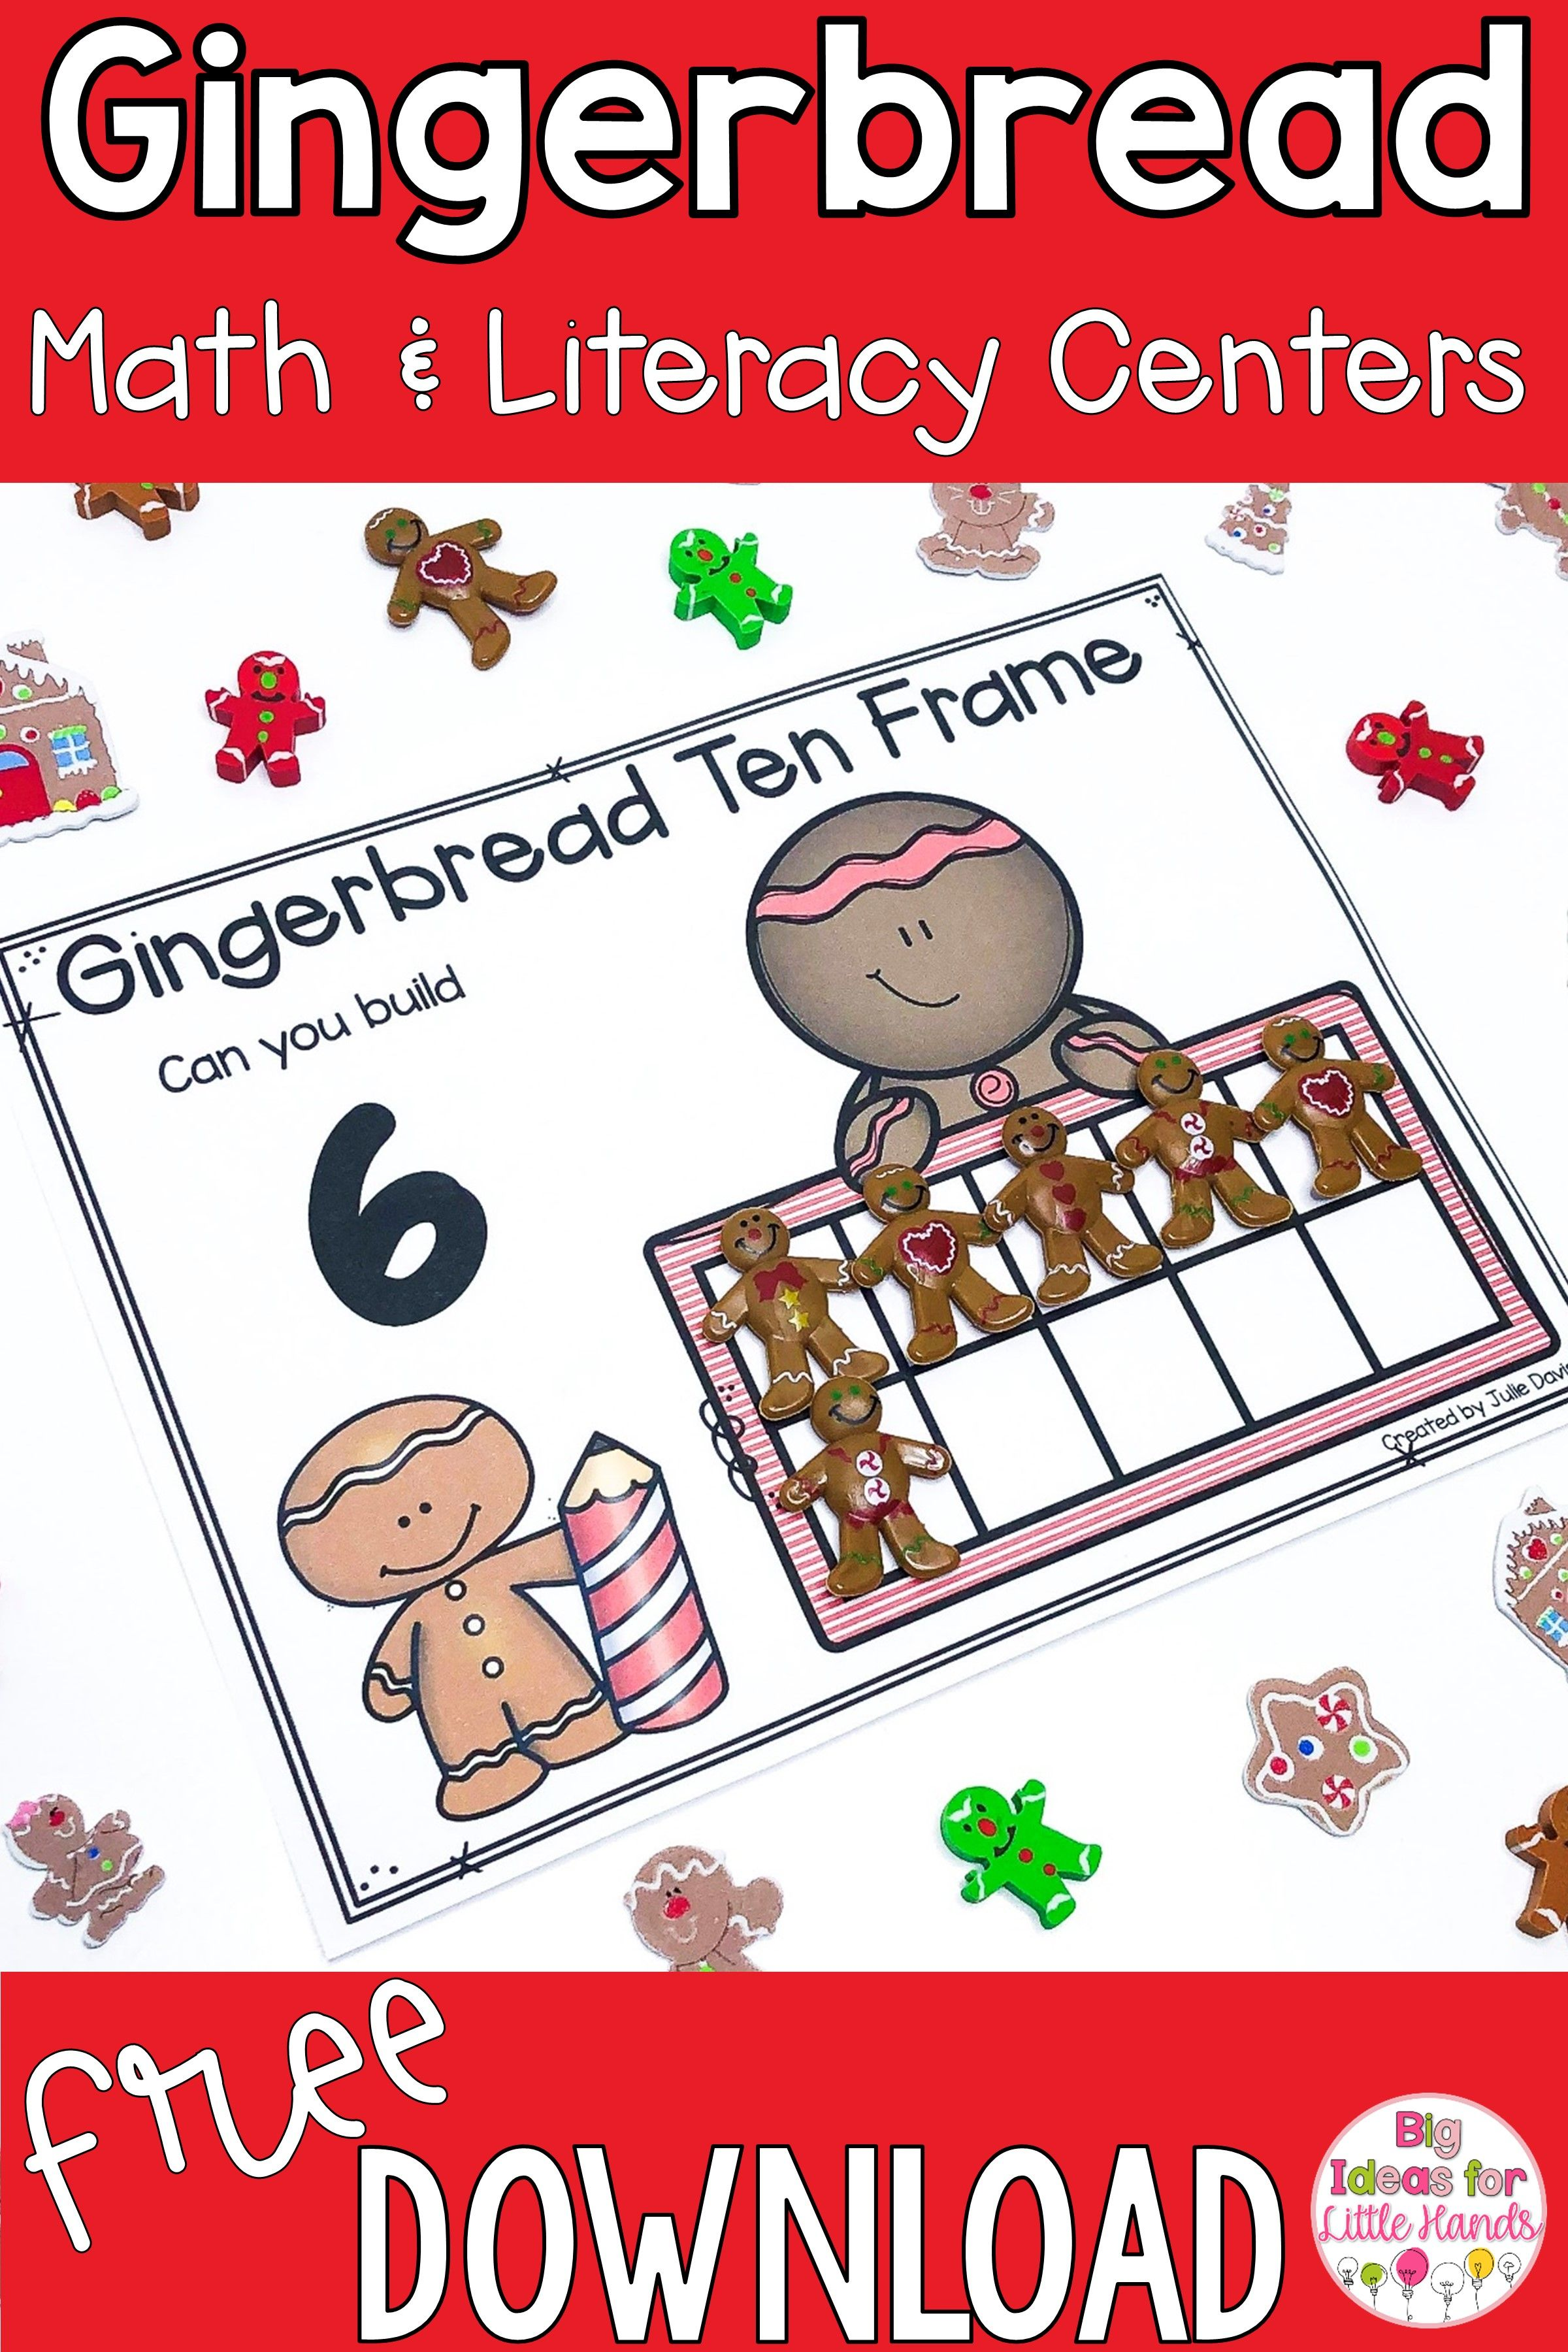 Math And Literacy Gingerbread Freebies